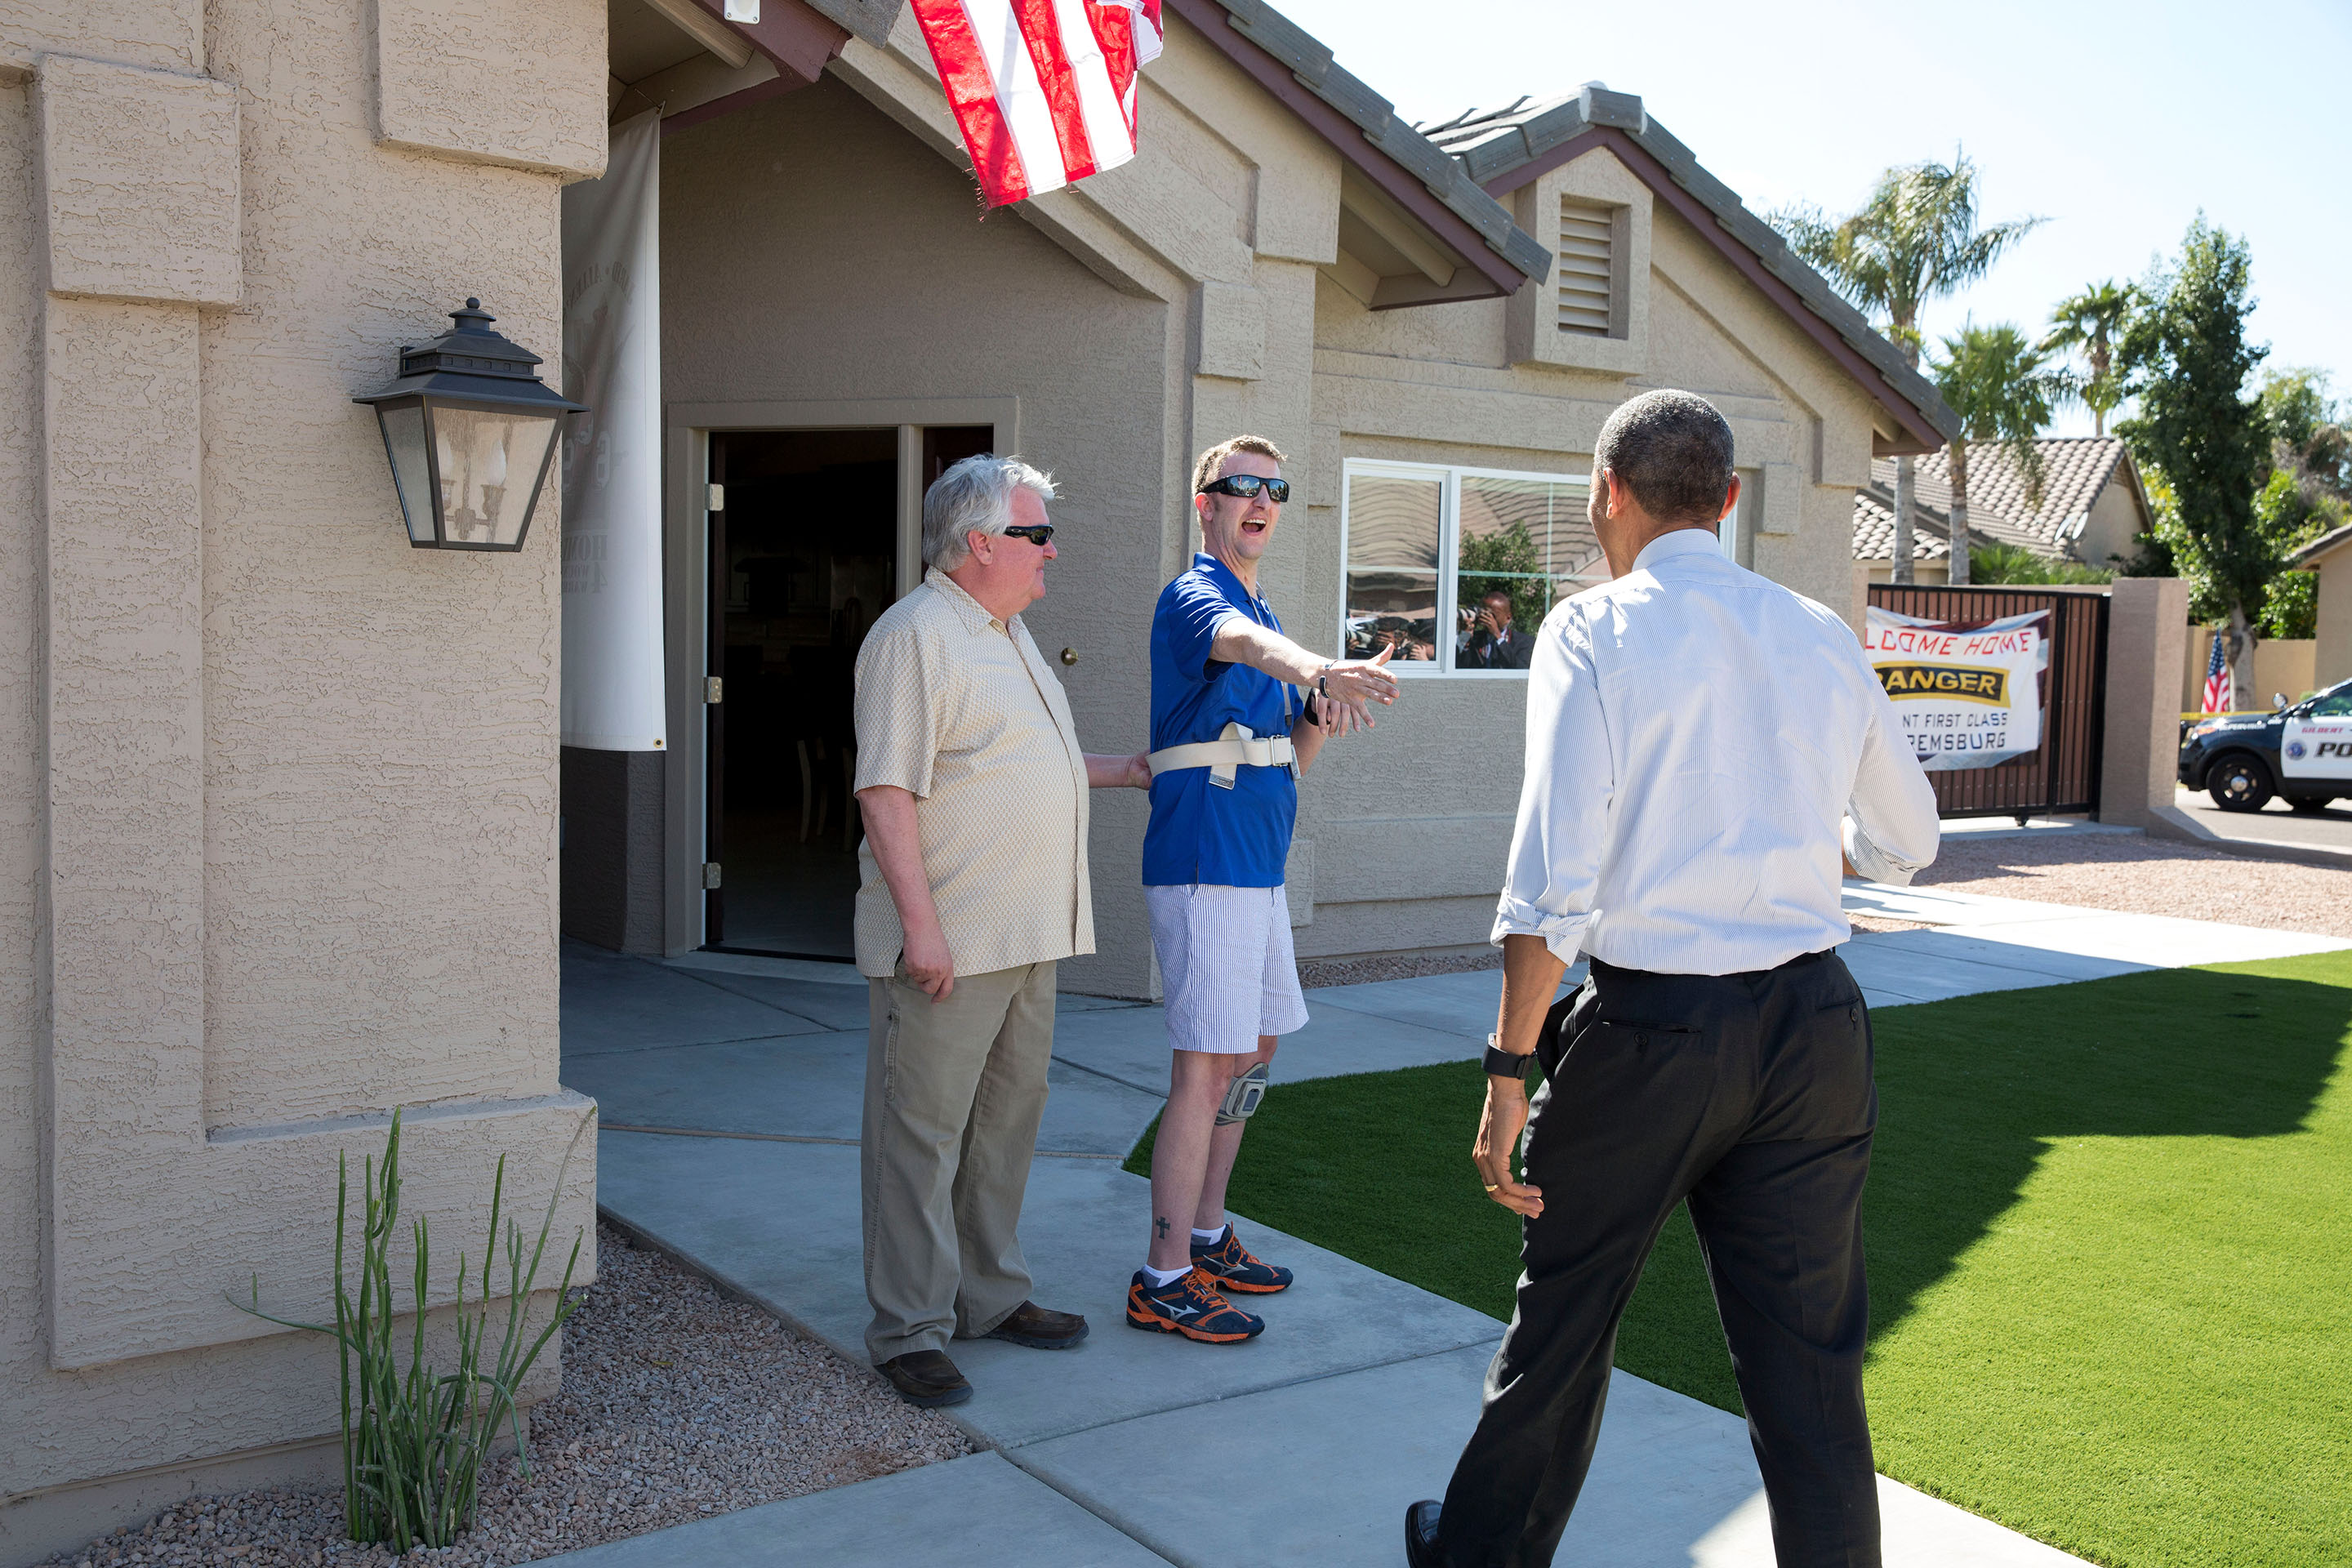 March 13, 2015: Cory and his father greet the President at Cory's newly finished home in Gilbert, Ariz. (Official White House Photo by Pete Souza)